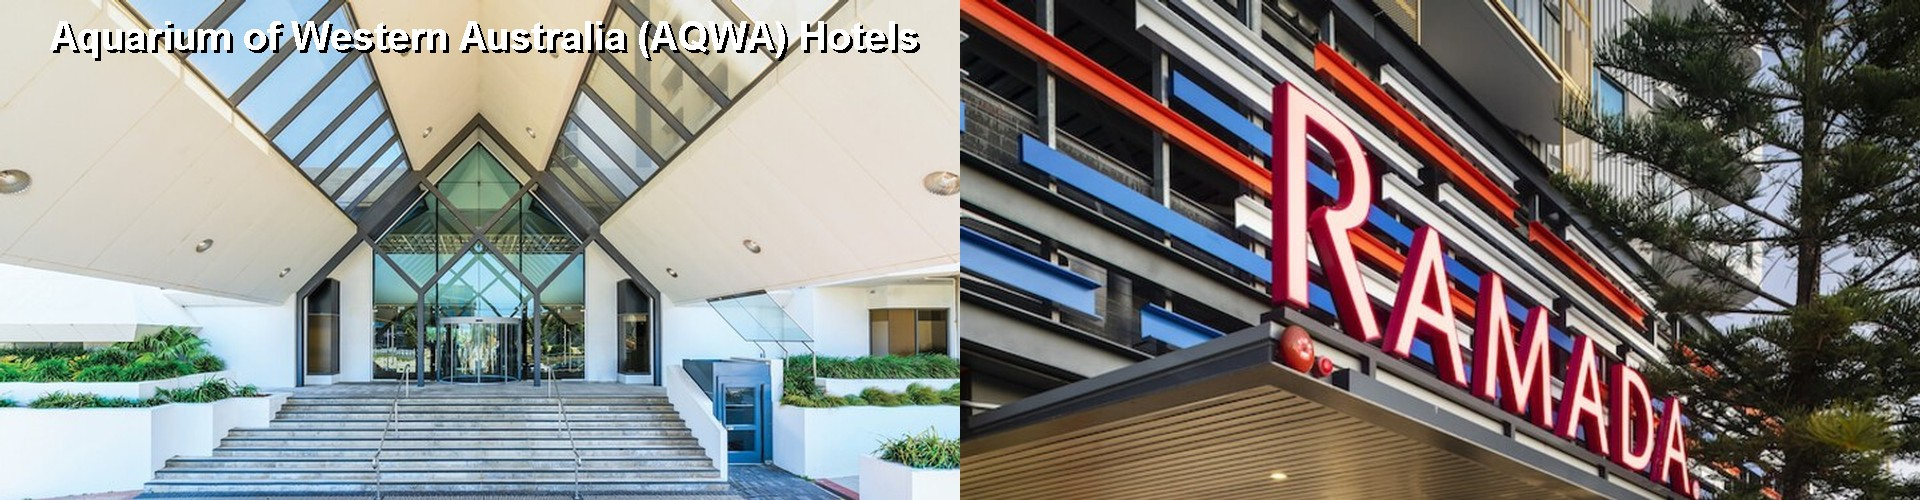 5 Best Hotels near Aquarium of Western Australia (AQWA)